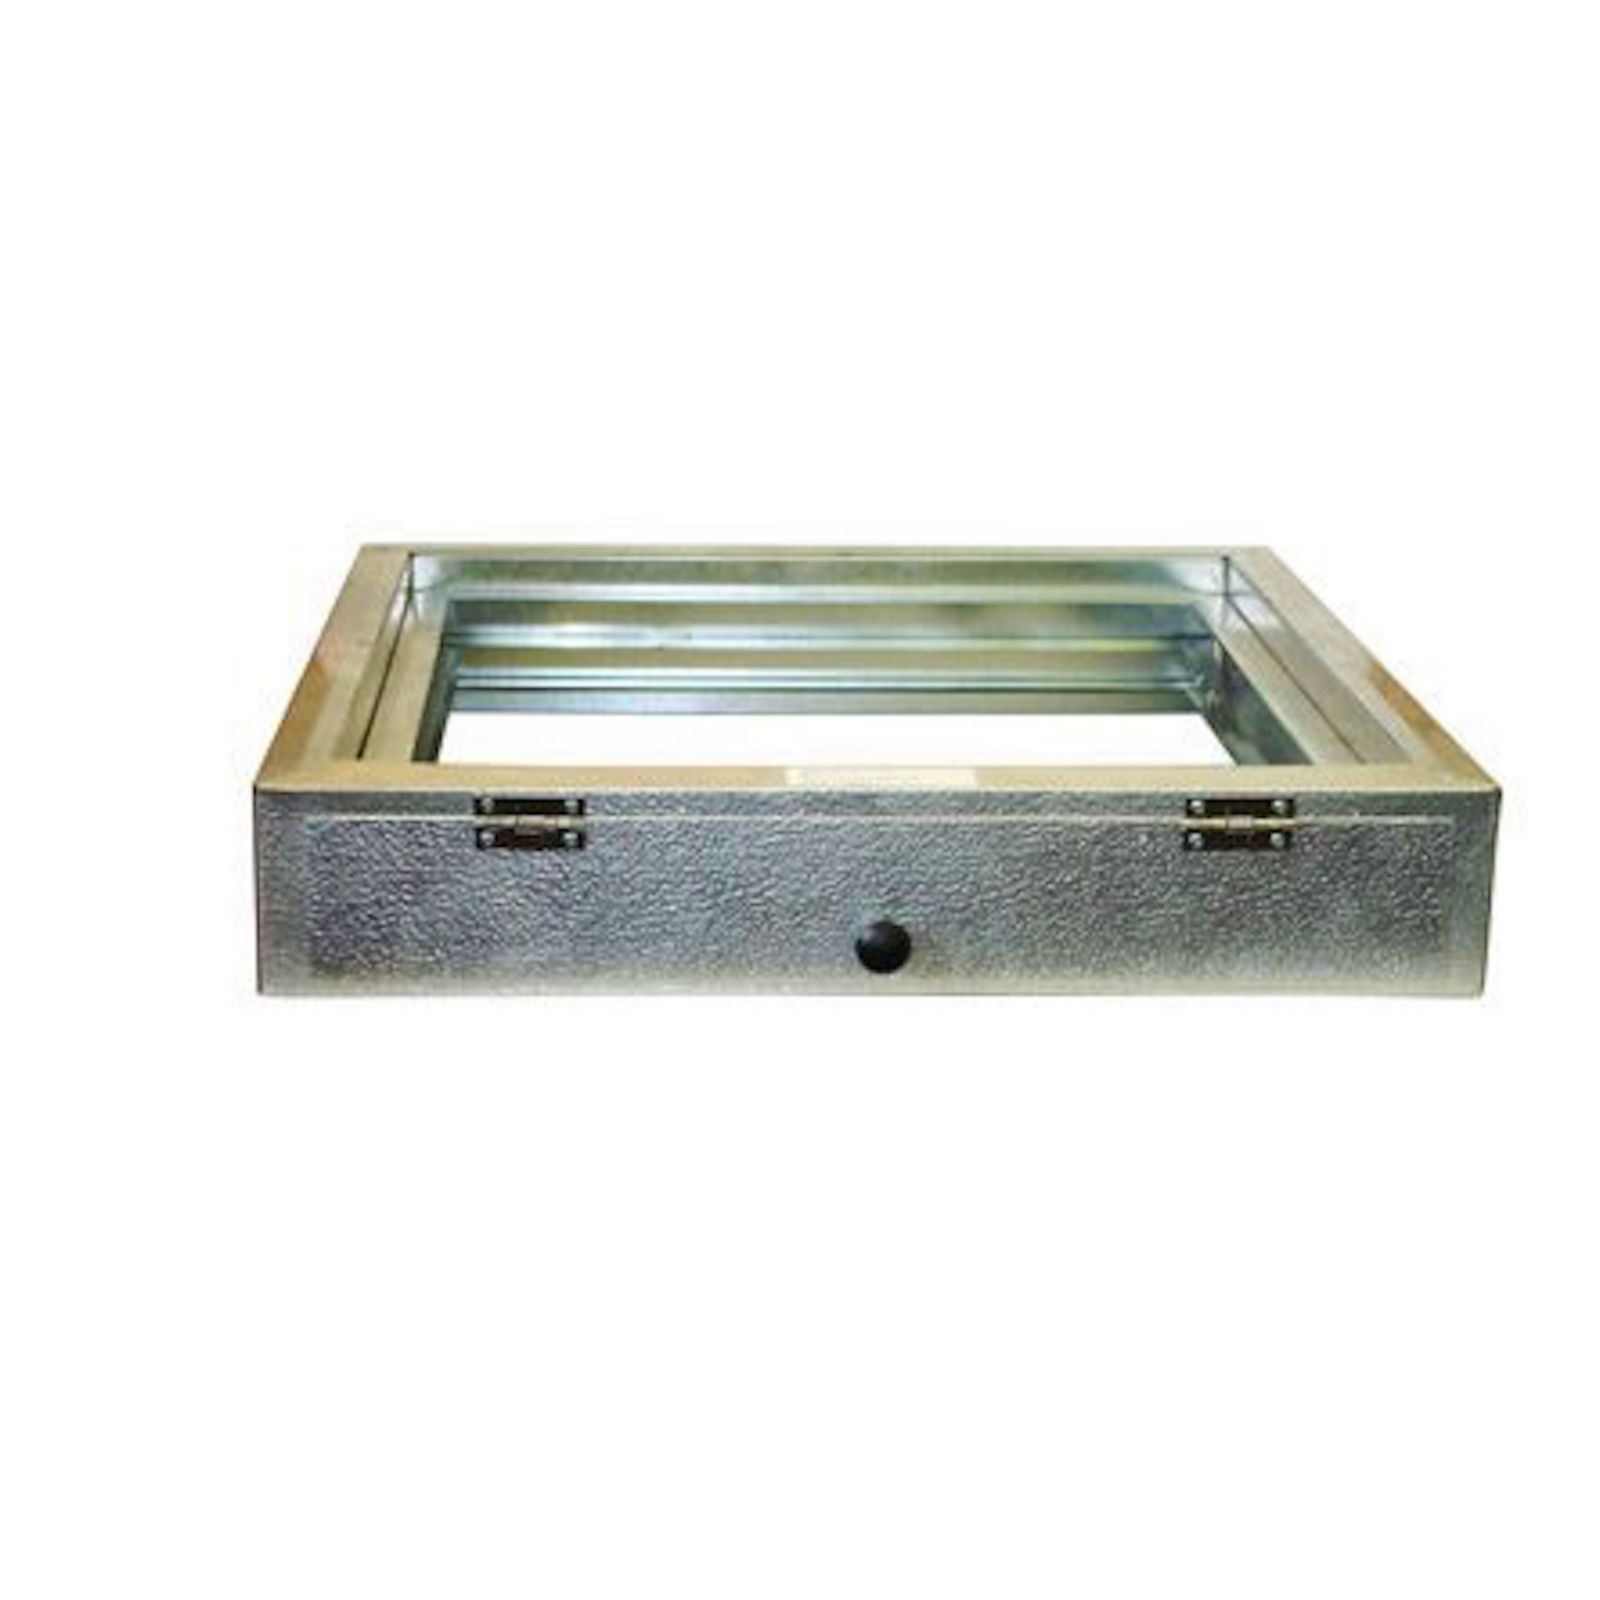 "The Metal Shop 433-257 - 2"" Filter Housing, 26 1/2"" X 22"" For Filter 24"" X 20"""